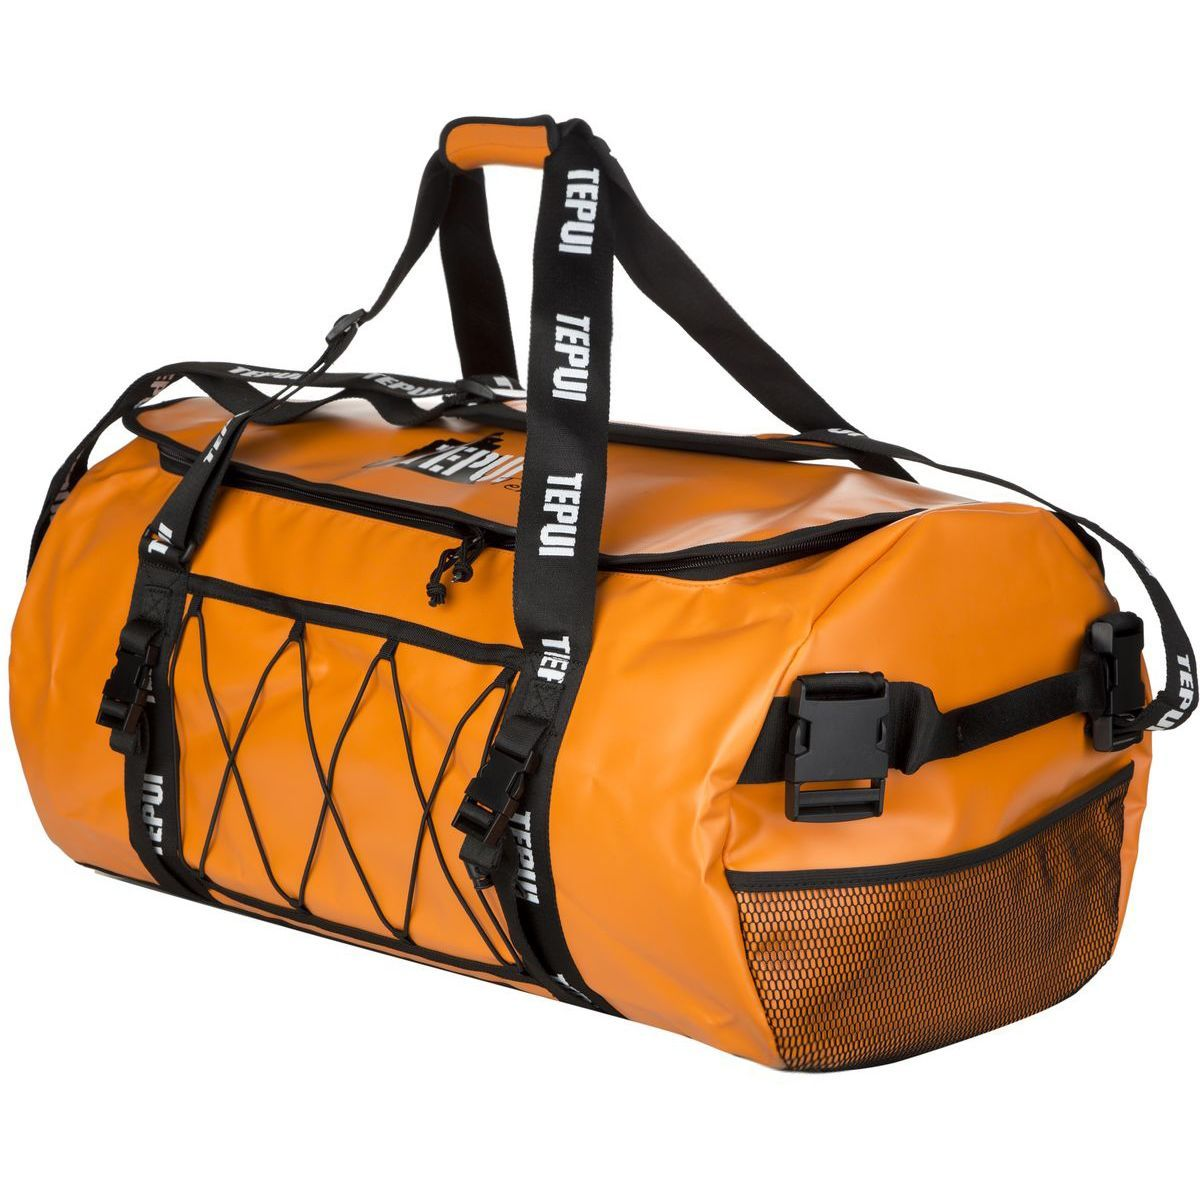 JTRVW Luggage Bags for Travel Portable Luggage Duffel Bag Fire Softball Travel Bags Carry-on in Trolley Handle